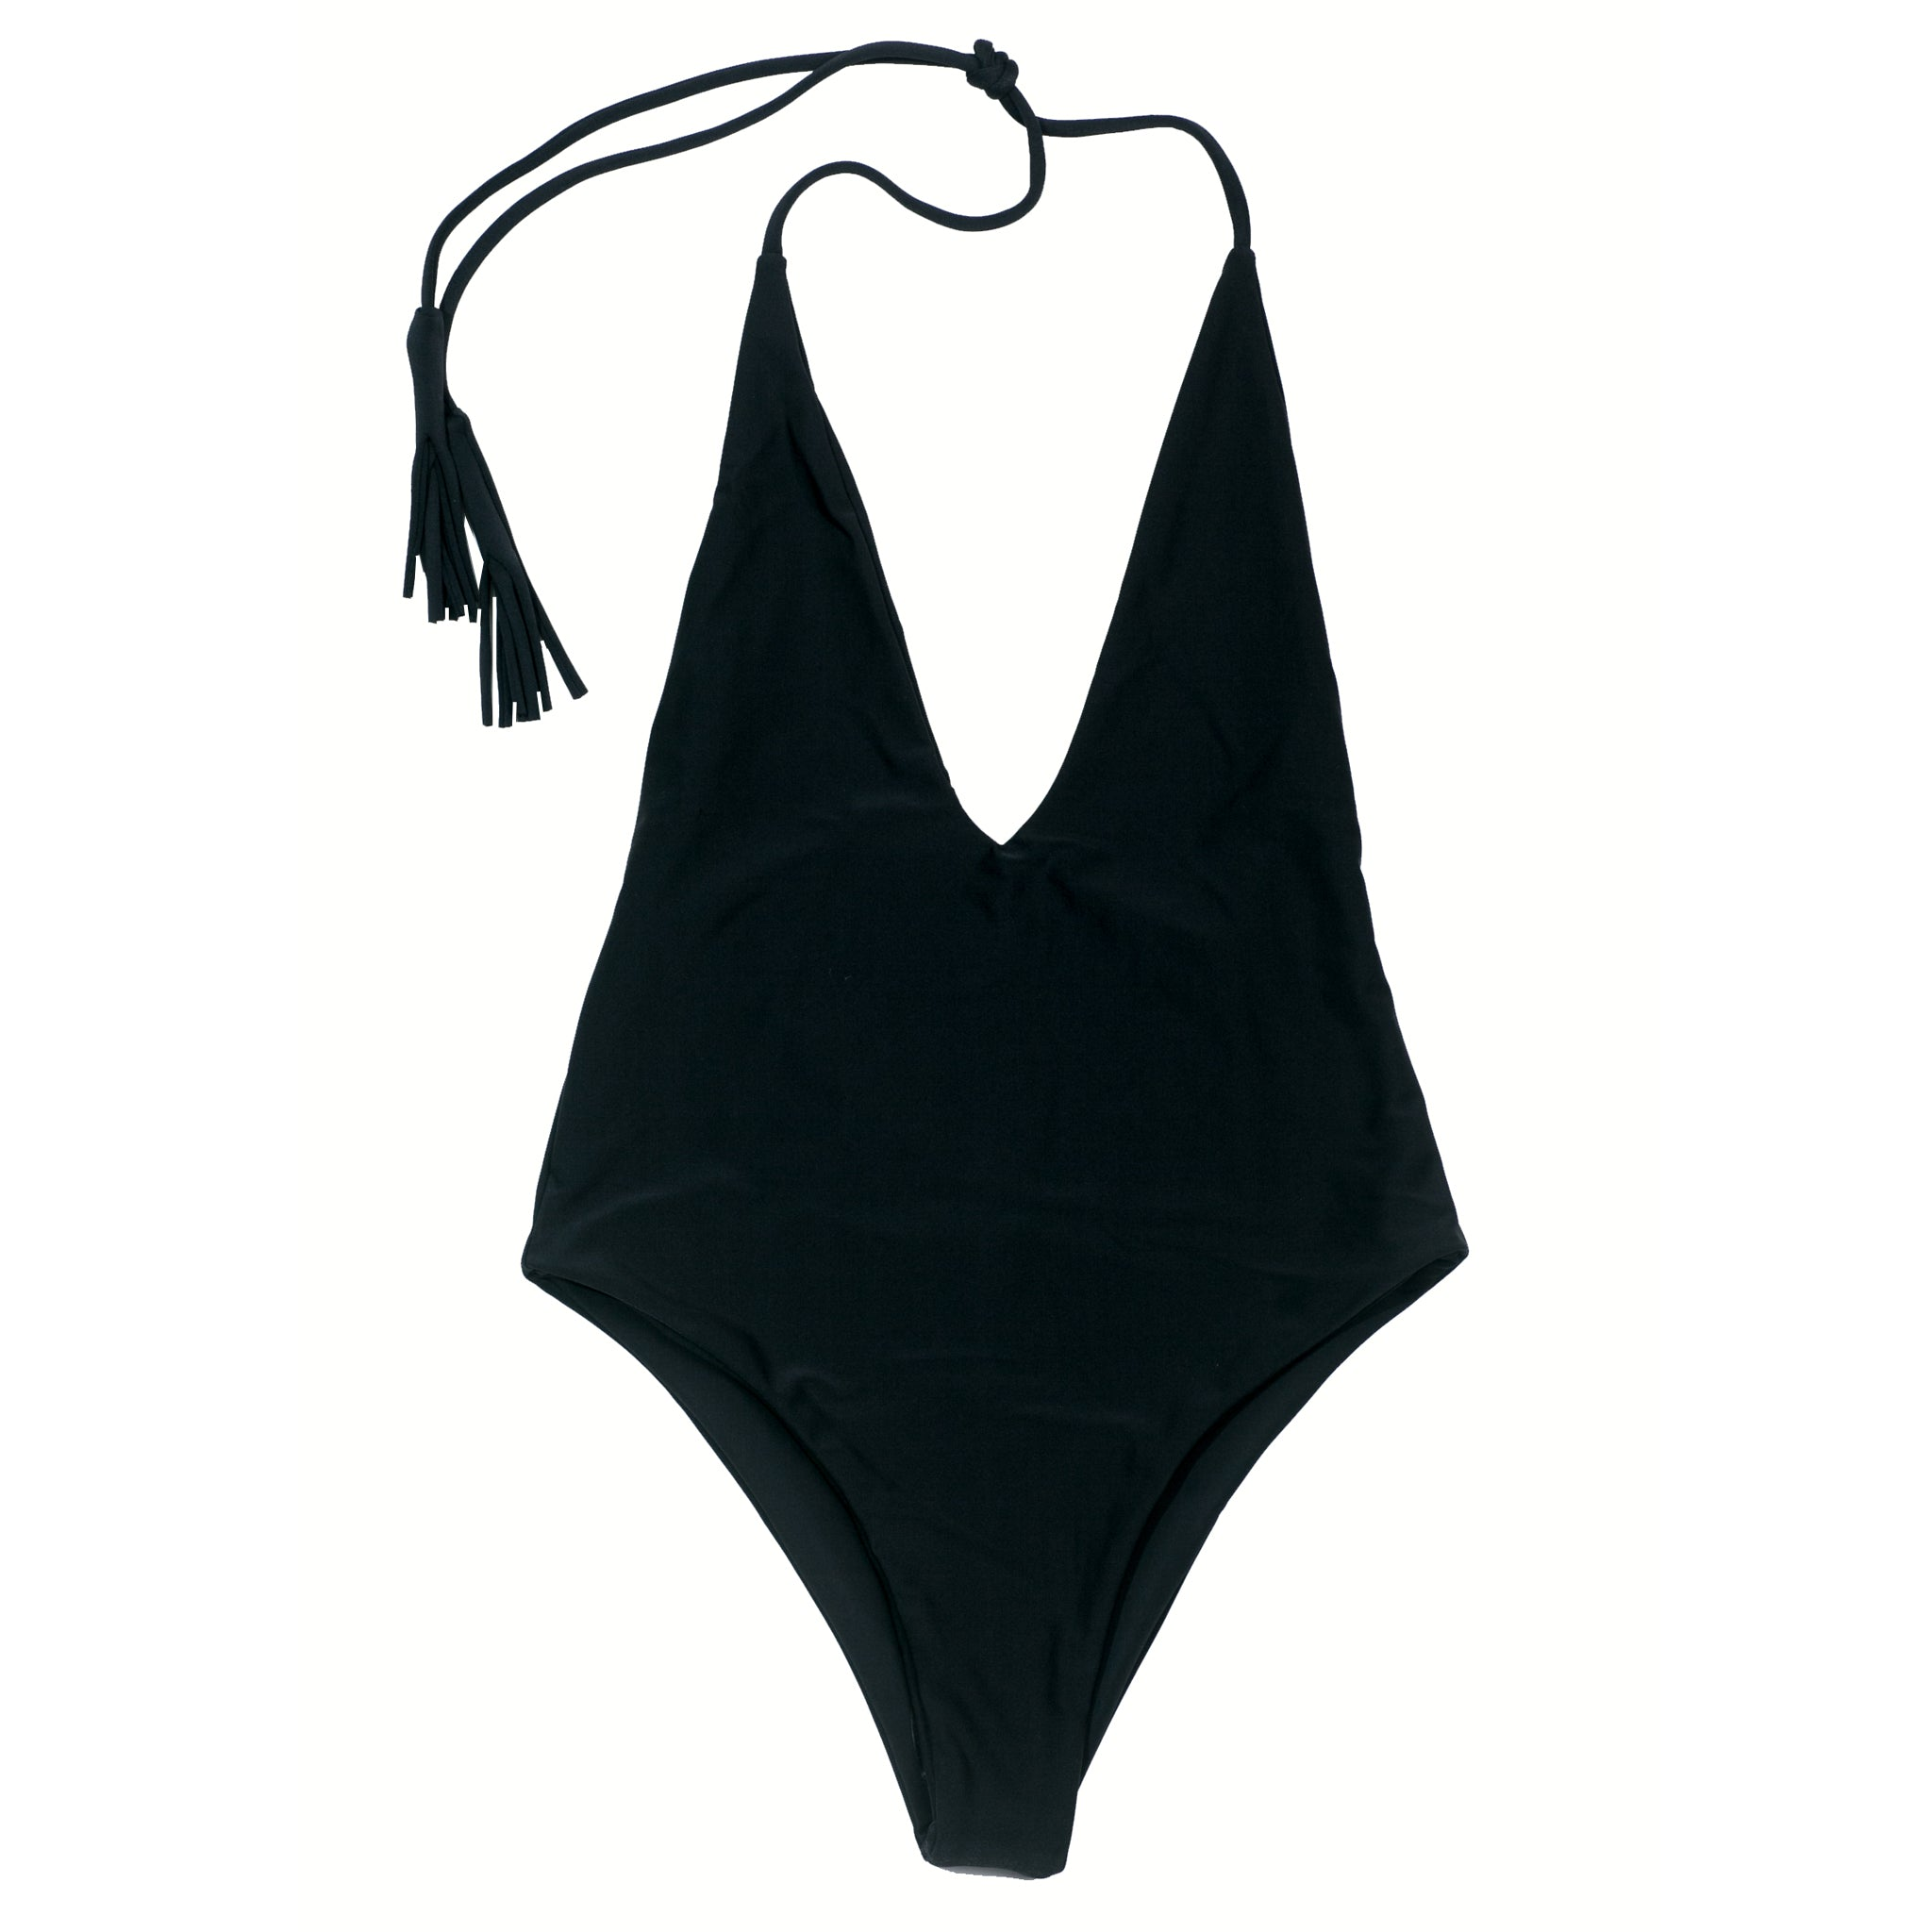 Black One-Piece Bikini -  50% OFF